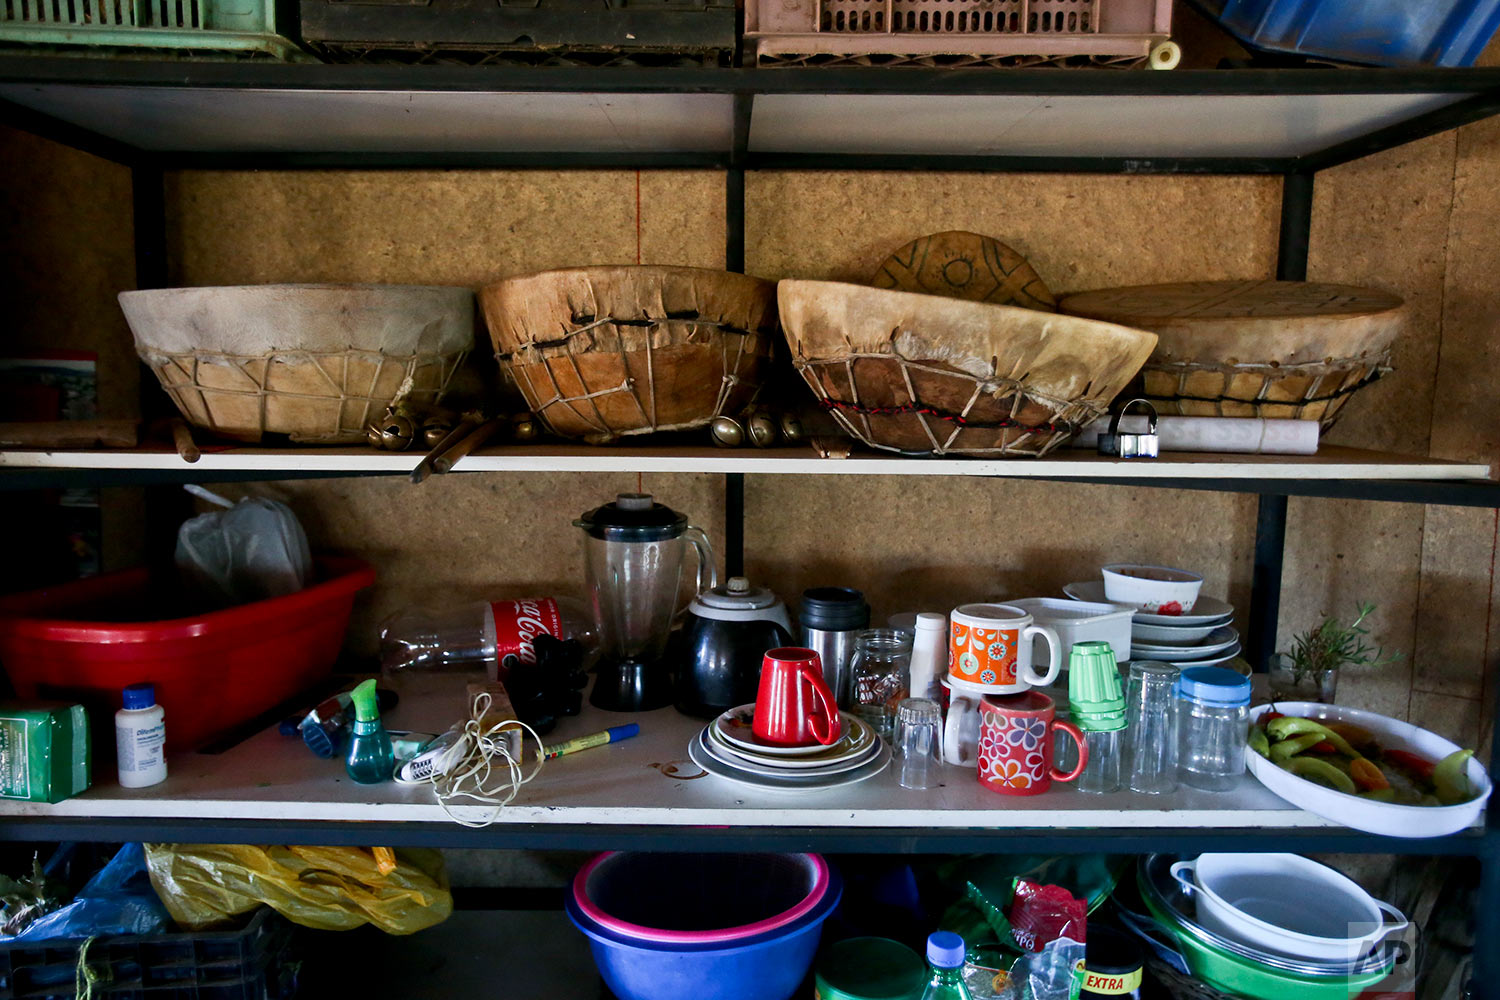 """This Monday, Jan. 8, 2018 photo shows ceremonial Mapuche drums, known as kulbruns, stored on a kitchen shelf in the home of Kallfurayen Llanquileo, a healer and religious leader known as a Machi, in the Mapuche community Enoco, in Temuco, Chile. """"In practical terms, we as a people don't exist. It's shameful,"""" said the president of ENAMA, a Mapuche group that encourages local businesses and advocates social change. (AP Photo/Esteban Felix) 